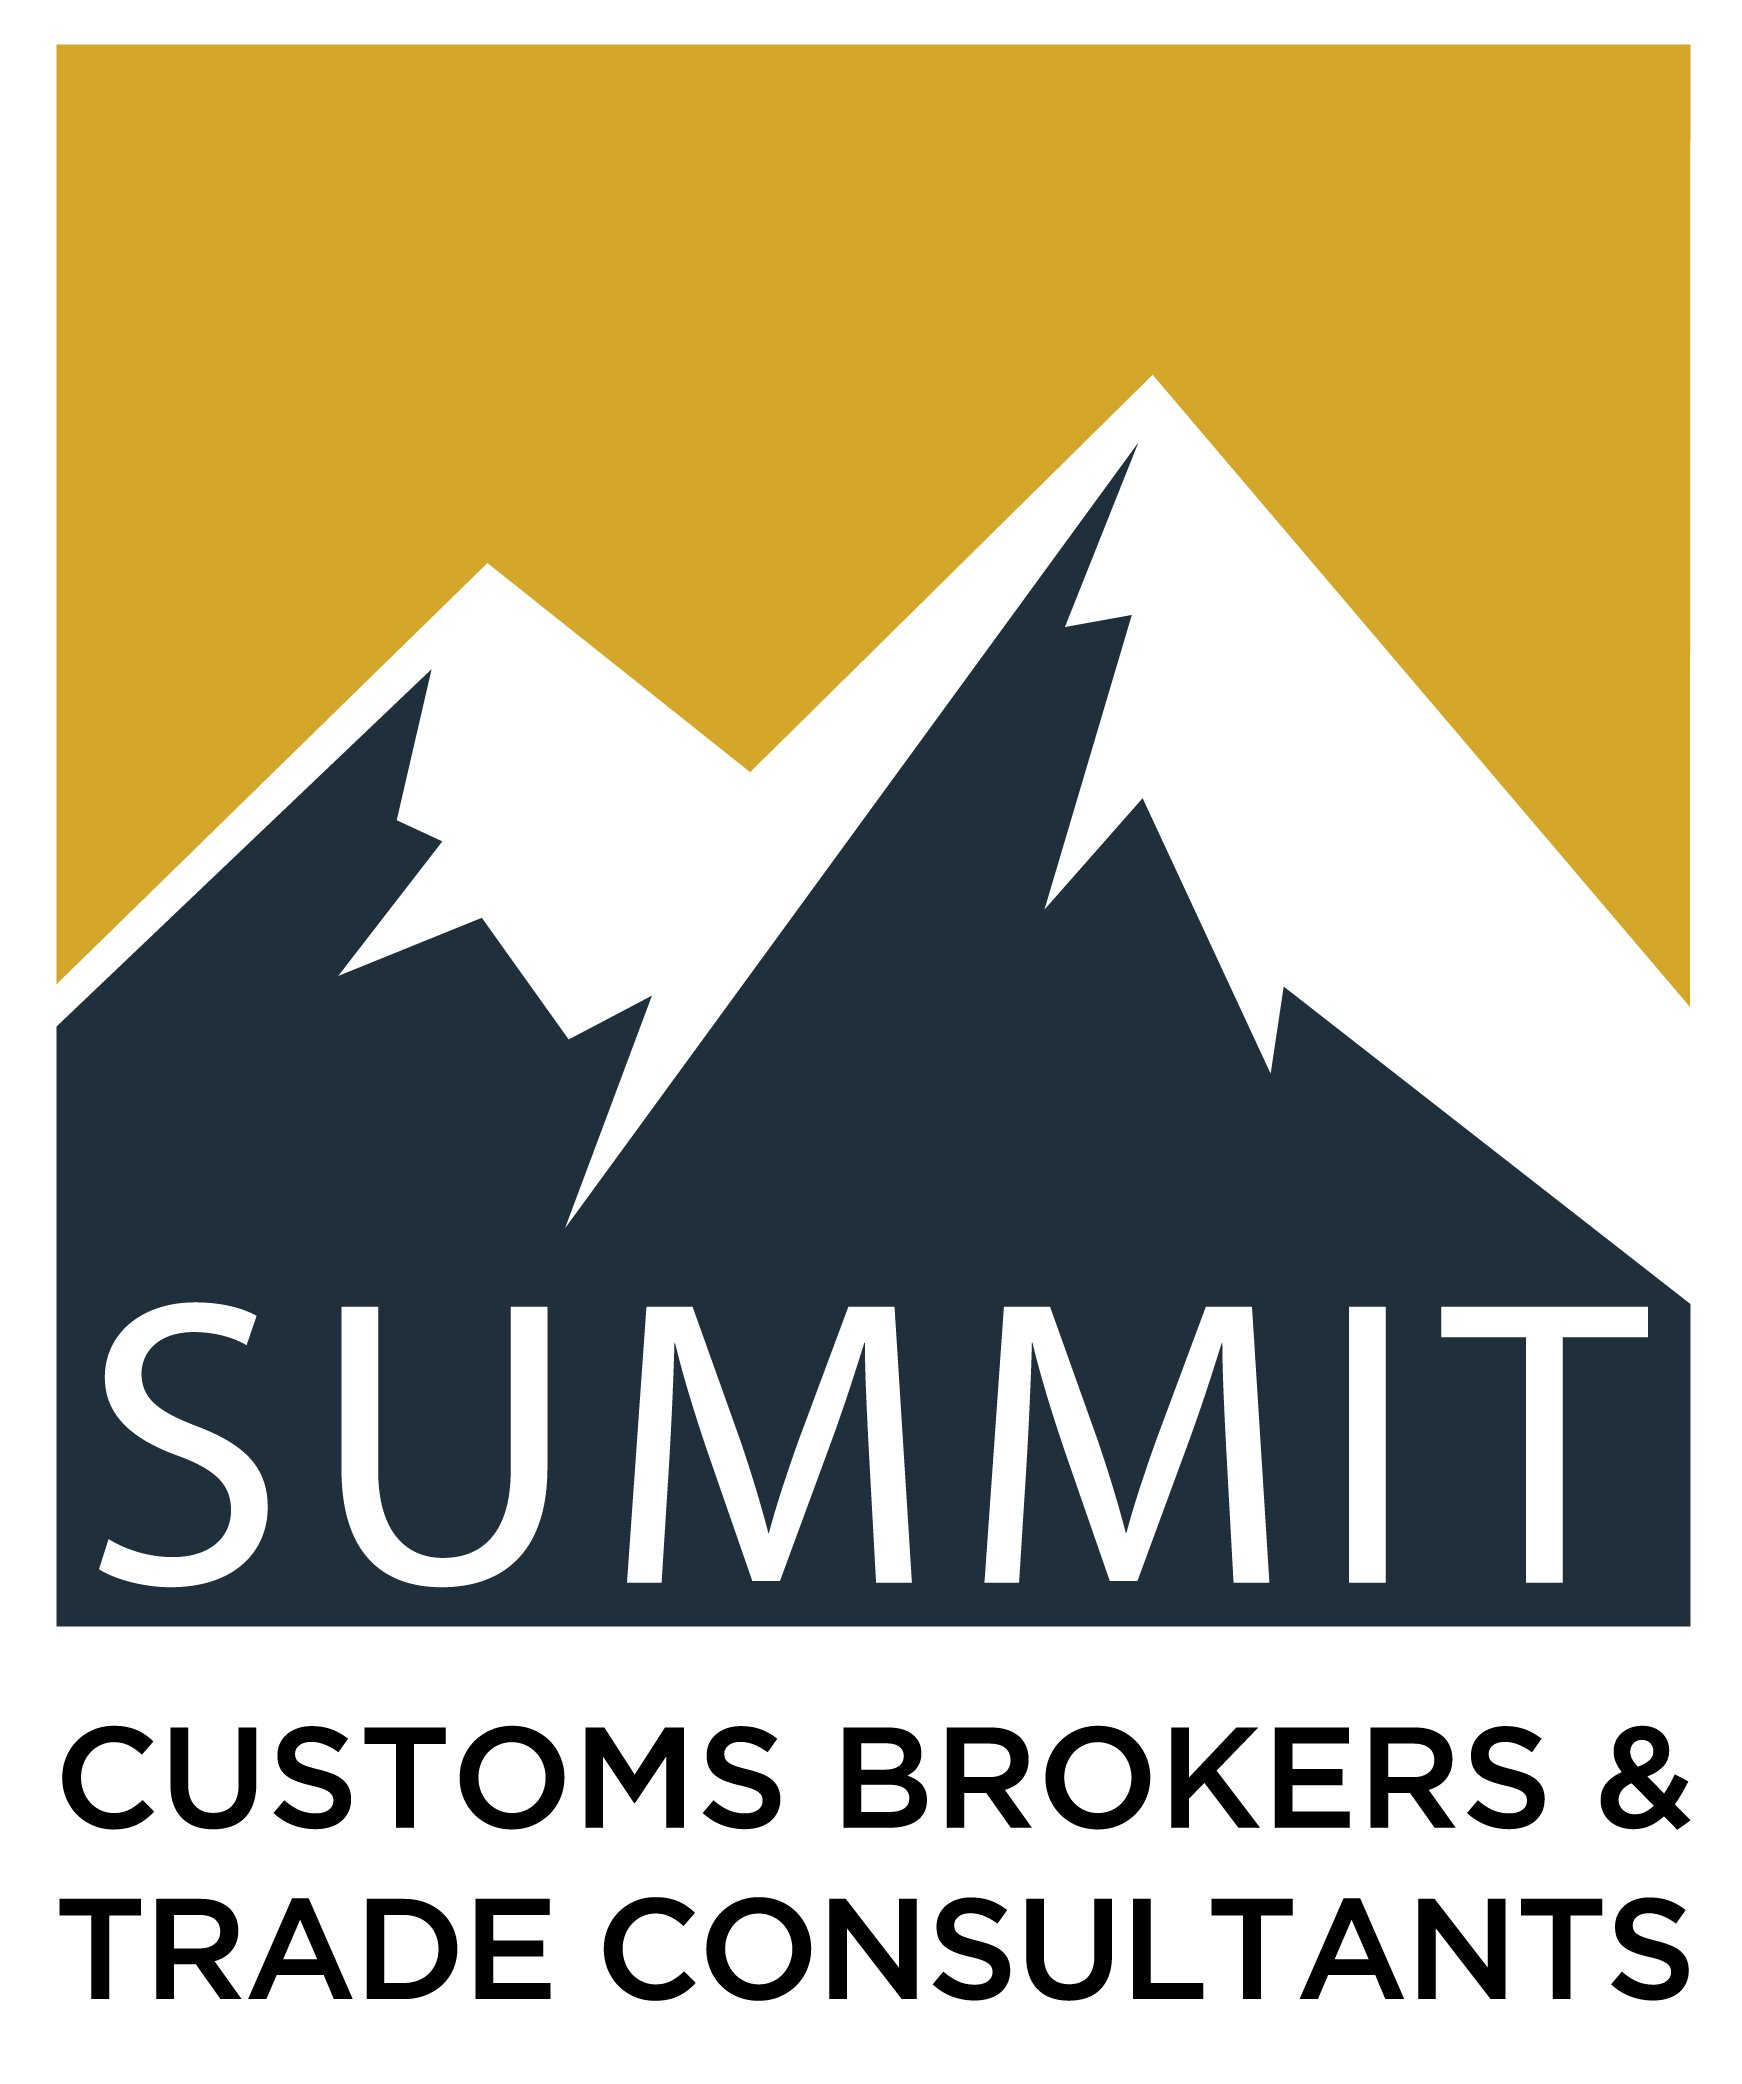 Summit Customers Brokers & Trade Consultants